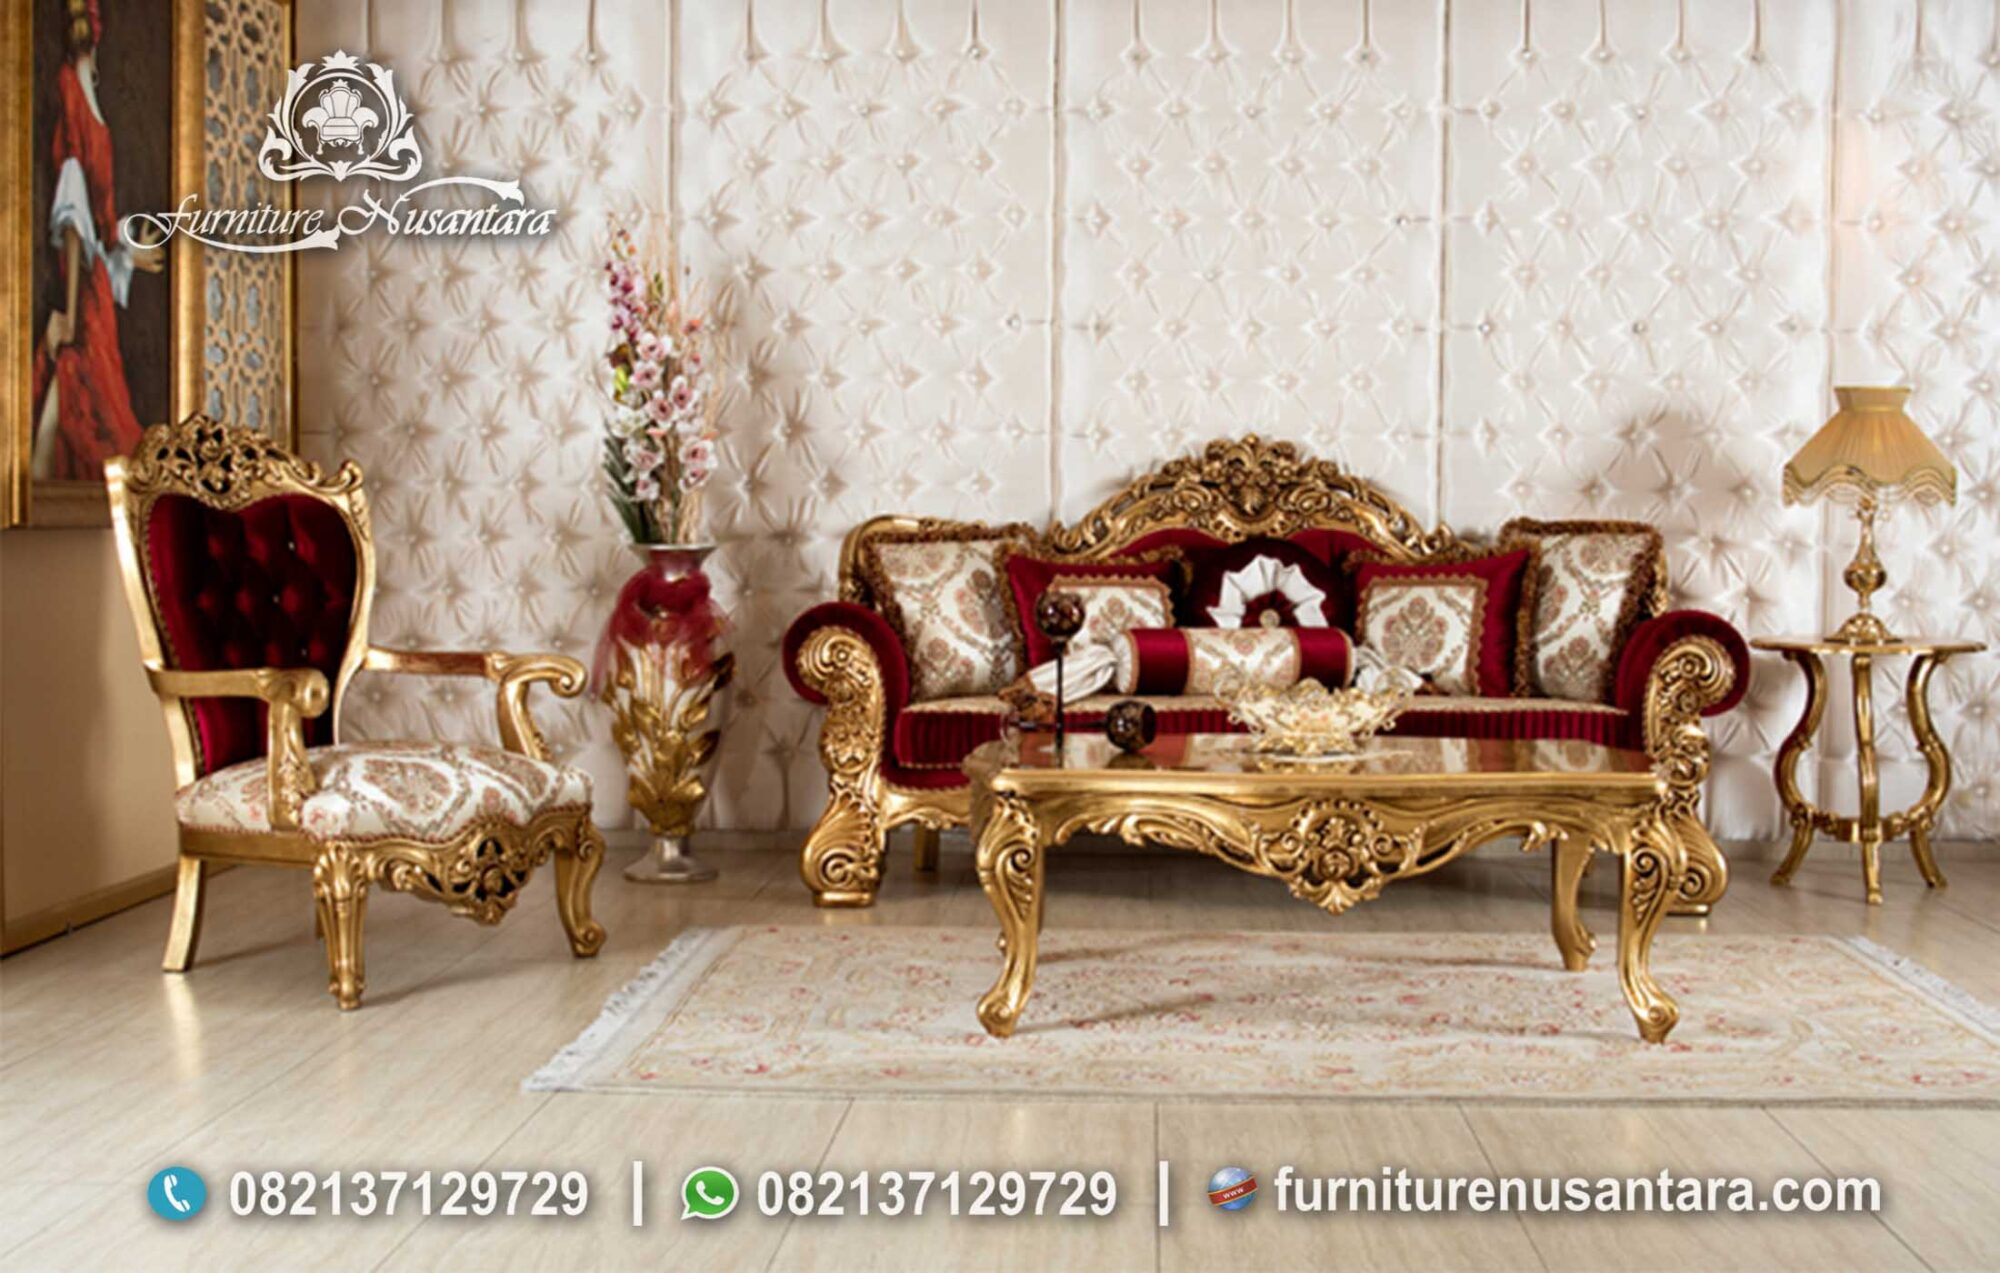 Best Sofa Warna Merah Ukiran Emas ST-58, Furniture Nusantara